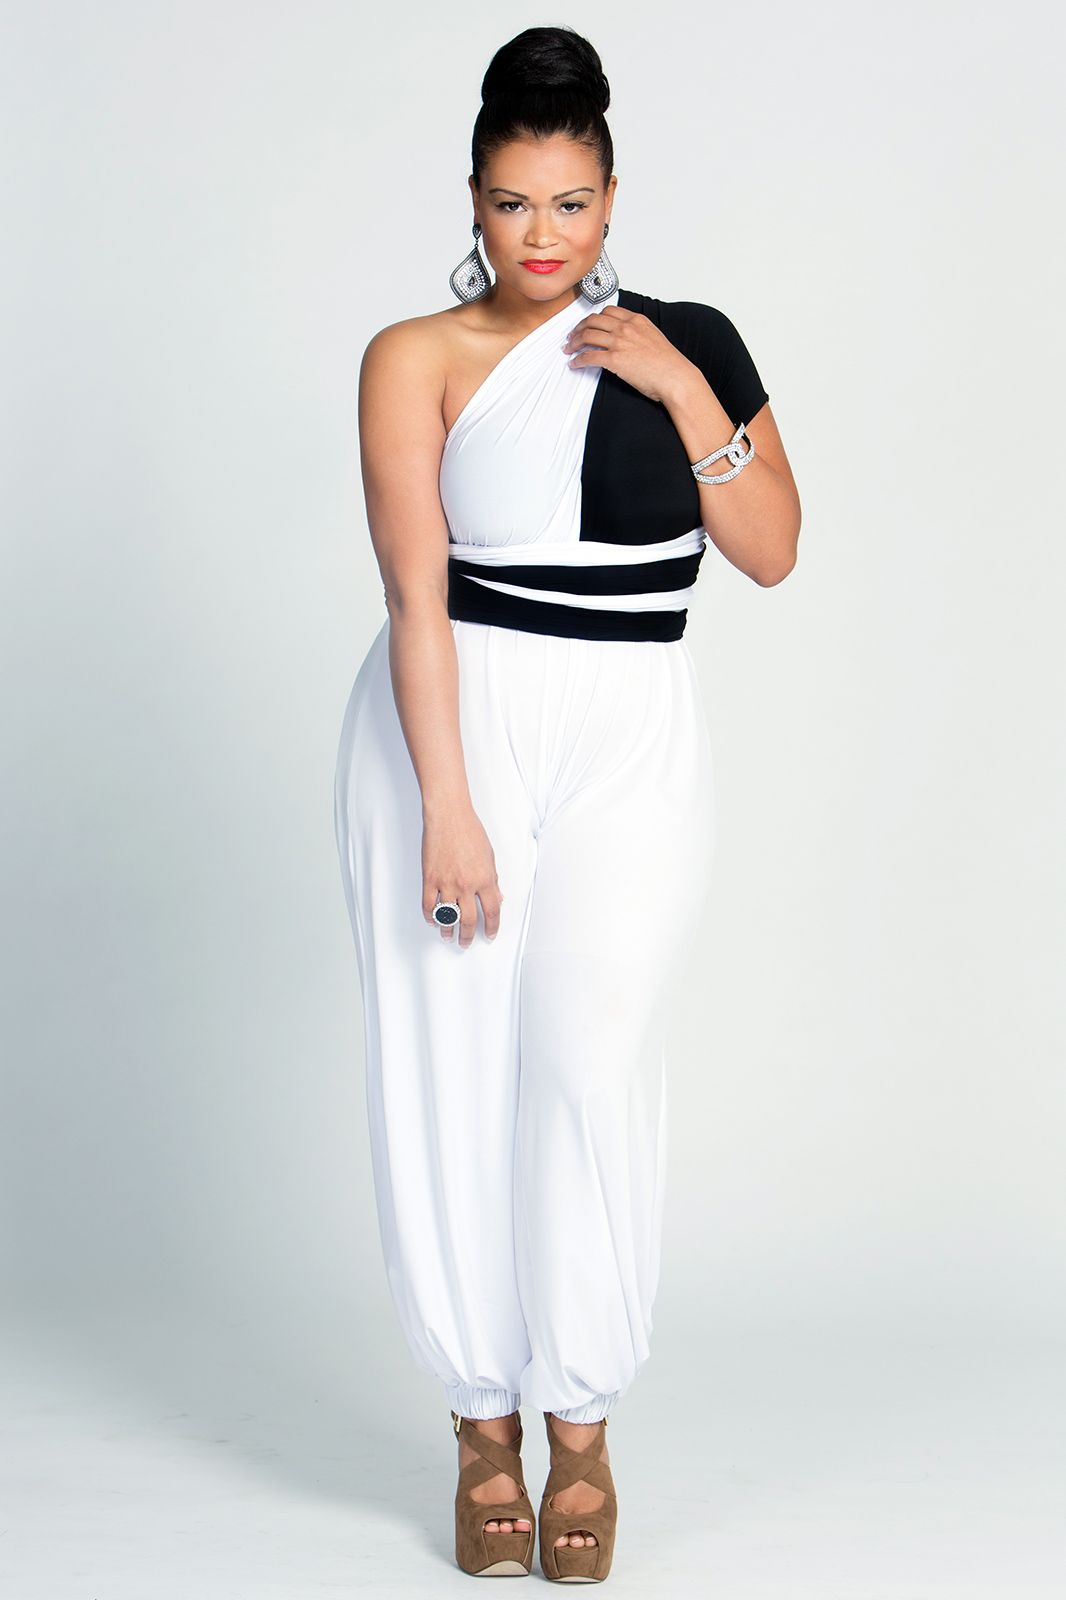 Collection Black And White Jumpsuit For Women Pictures - Reikian